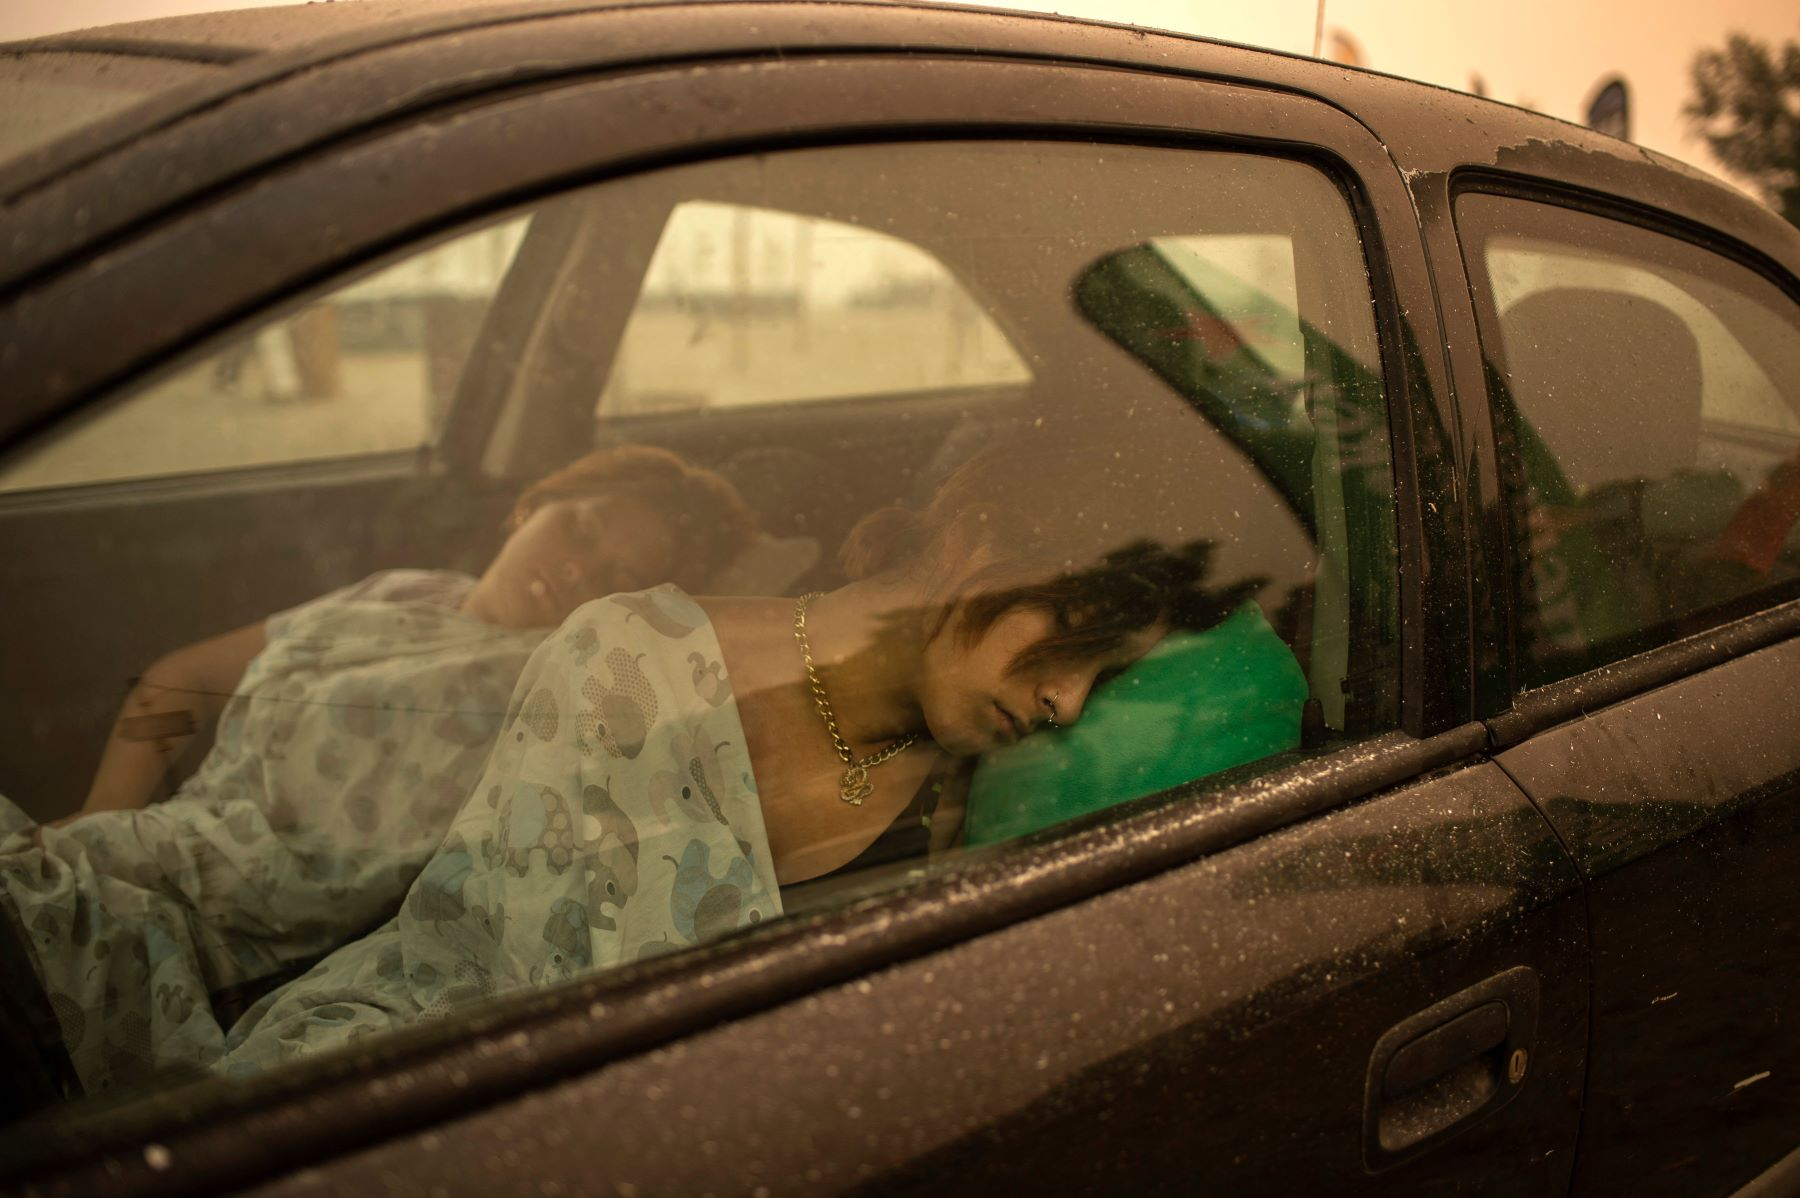 A woman and child sleeping in a car in the Pefki village of Euboea, Italy